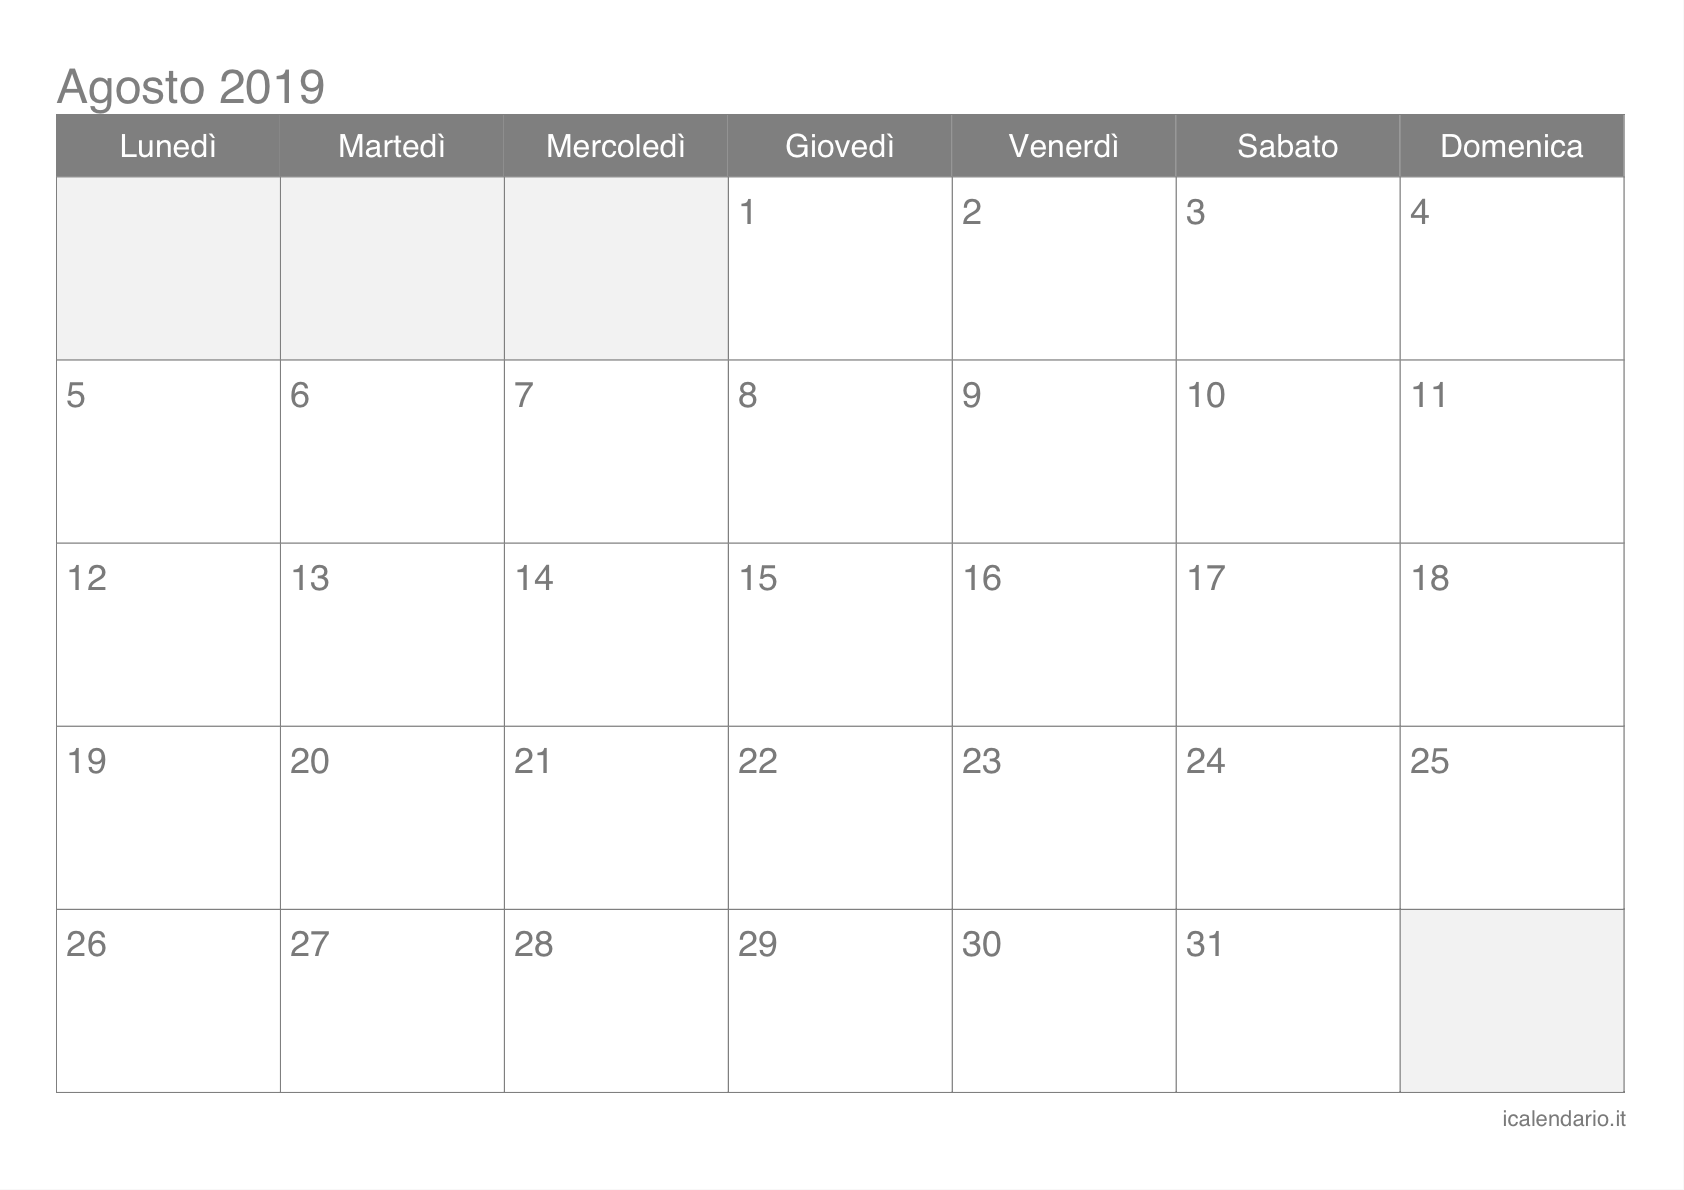 Calendario Mese Agosto.Calendario Agosto 2019 Da Stampare Icalendario It